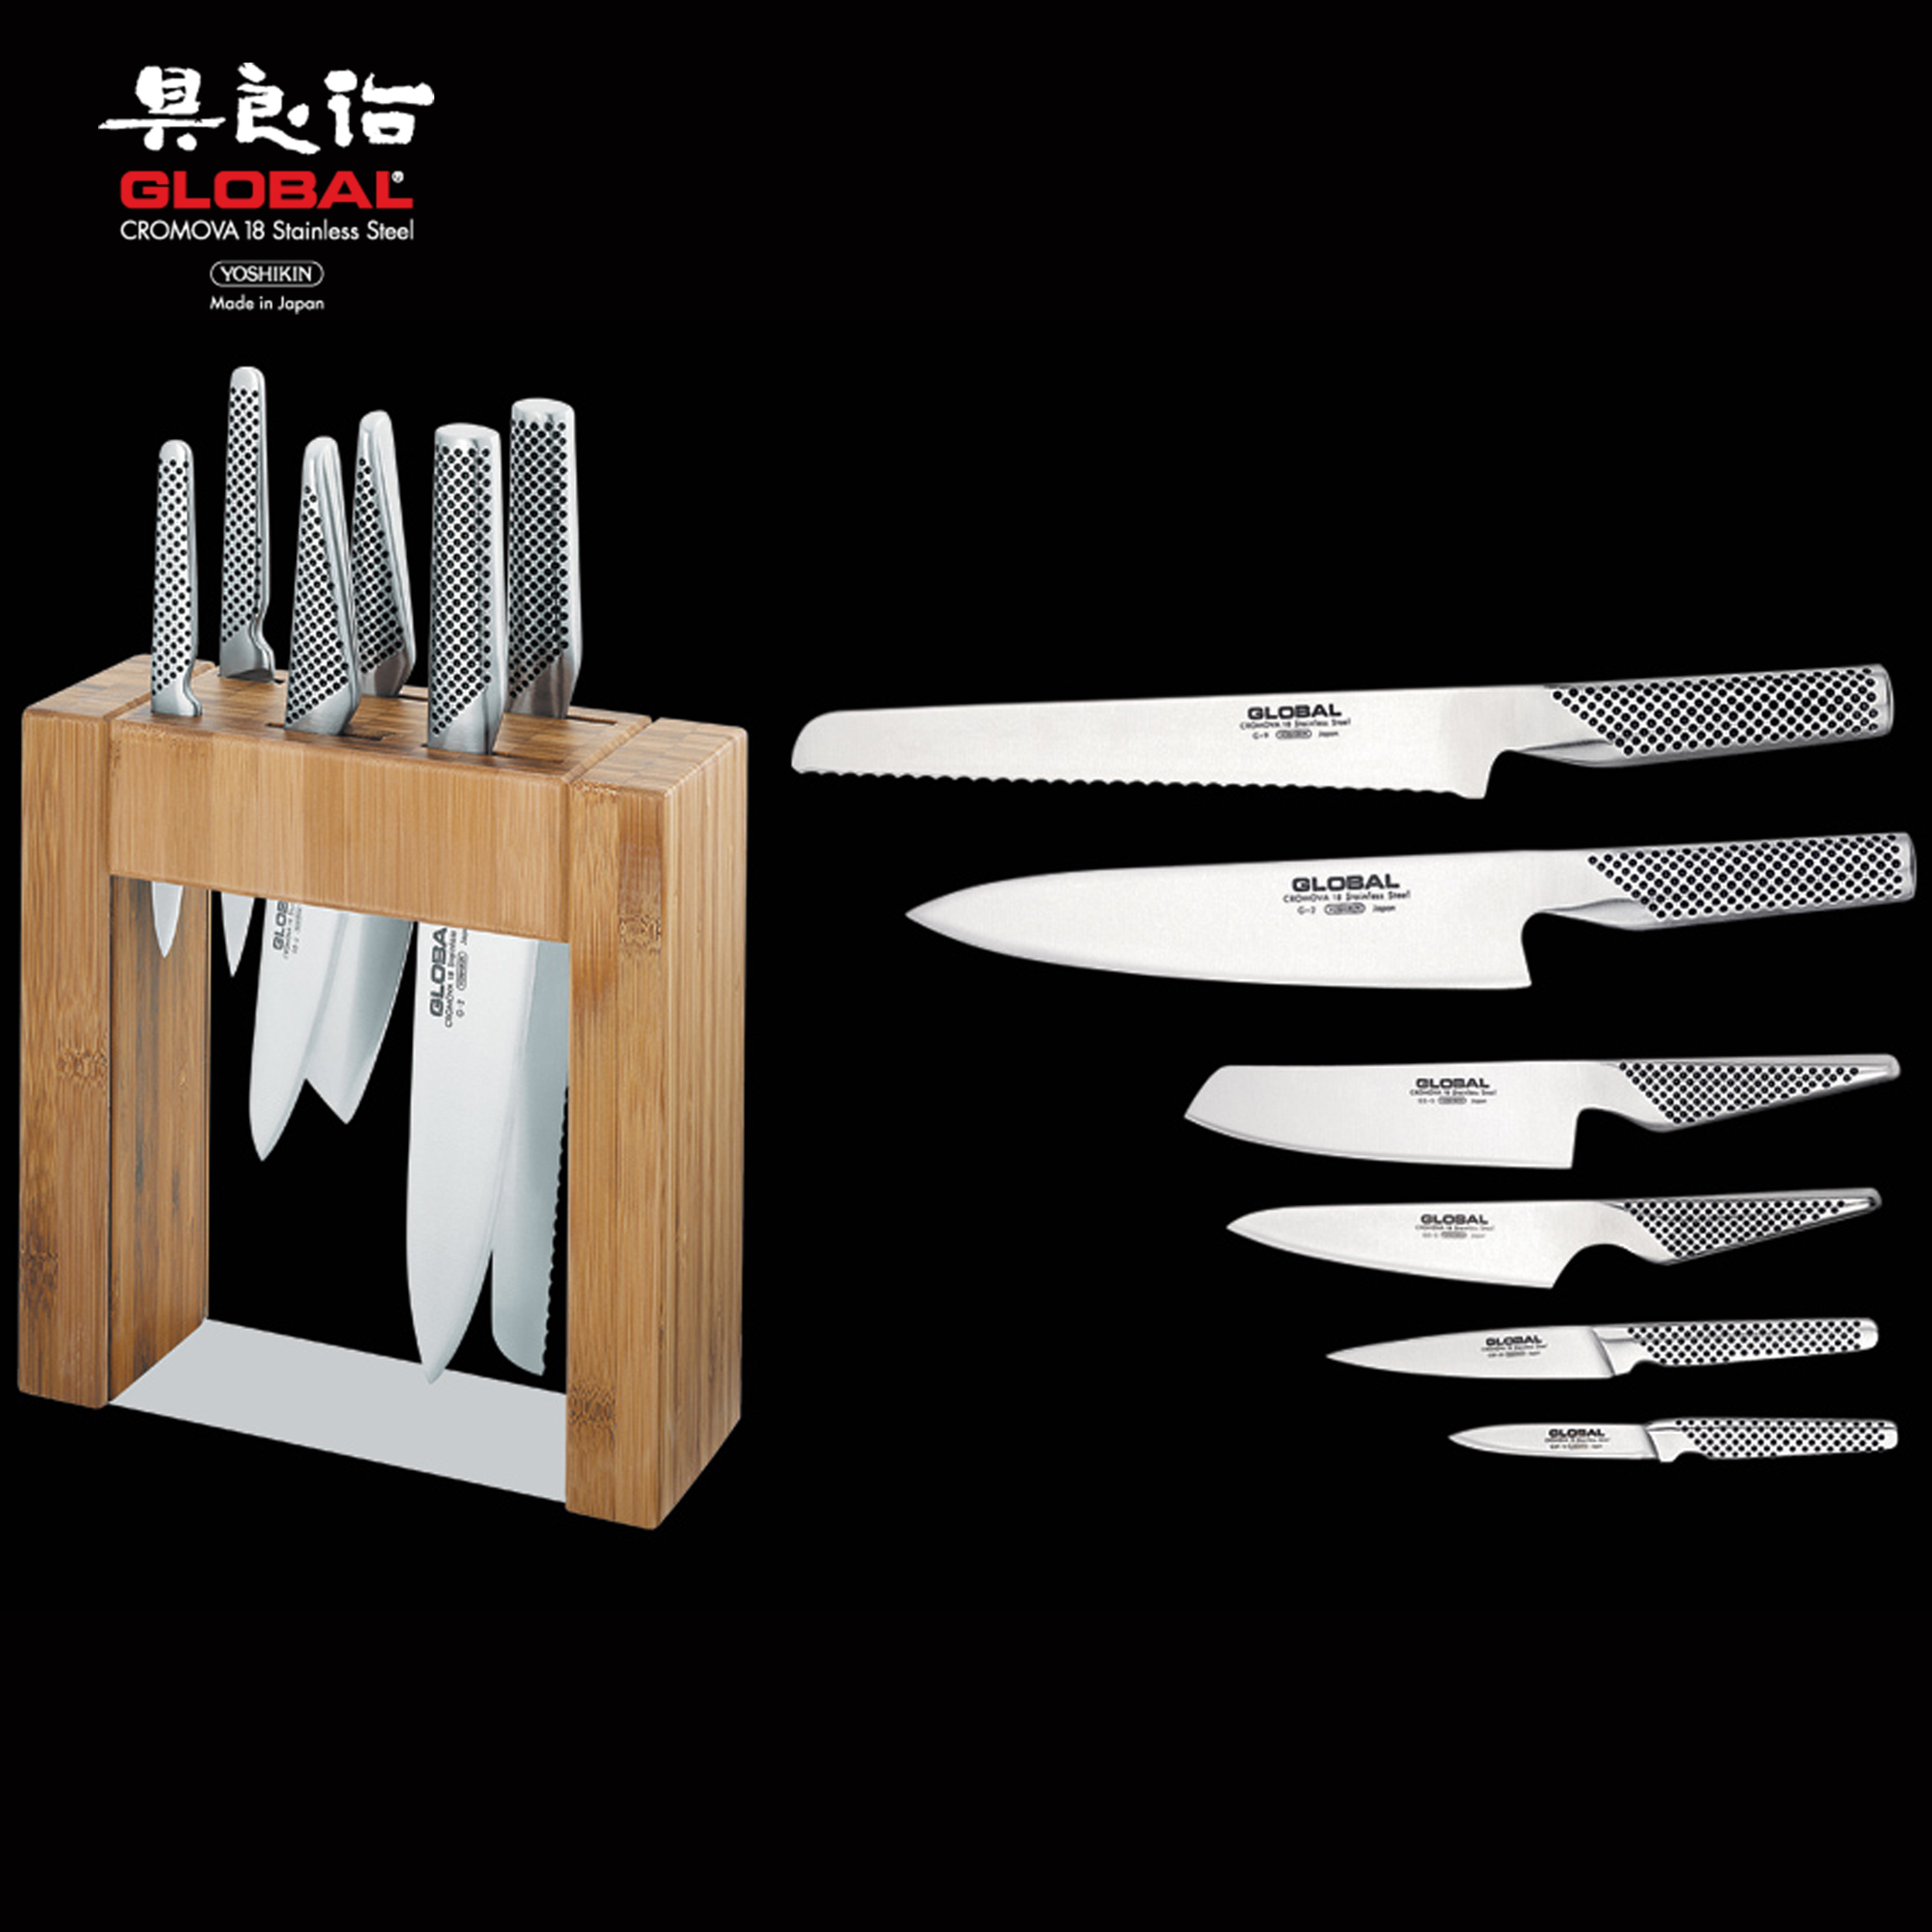 ugg boots quality knife sets with block santa barbara institute for consciousness studies. Black Bedroom Furniture Sets. Home Design Ideas